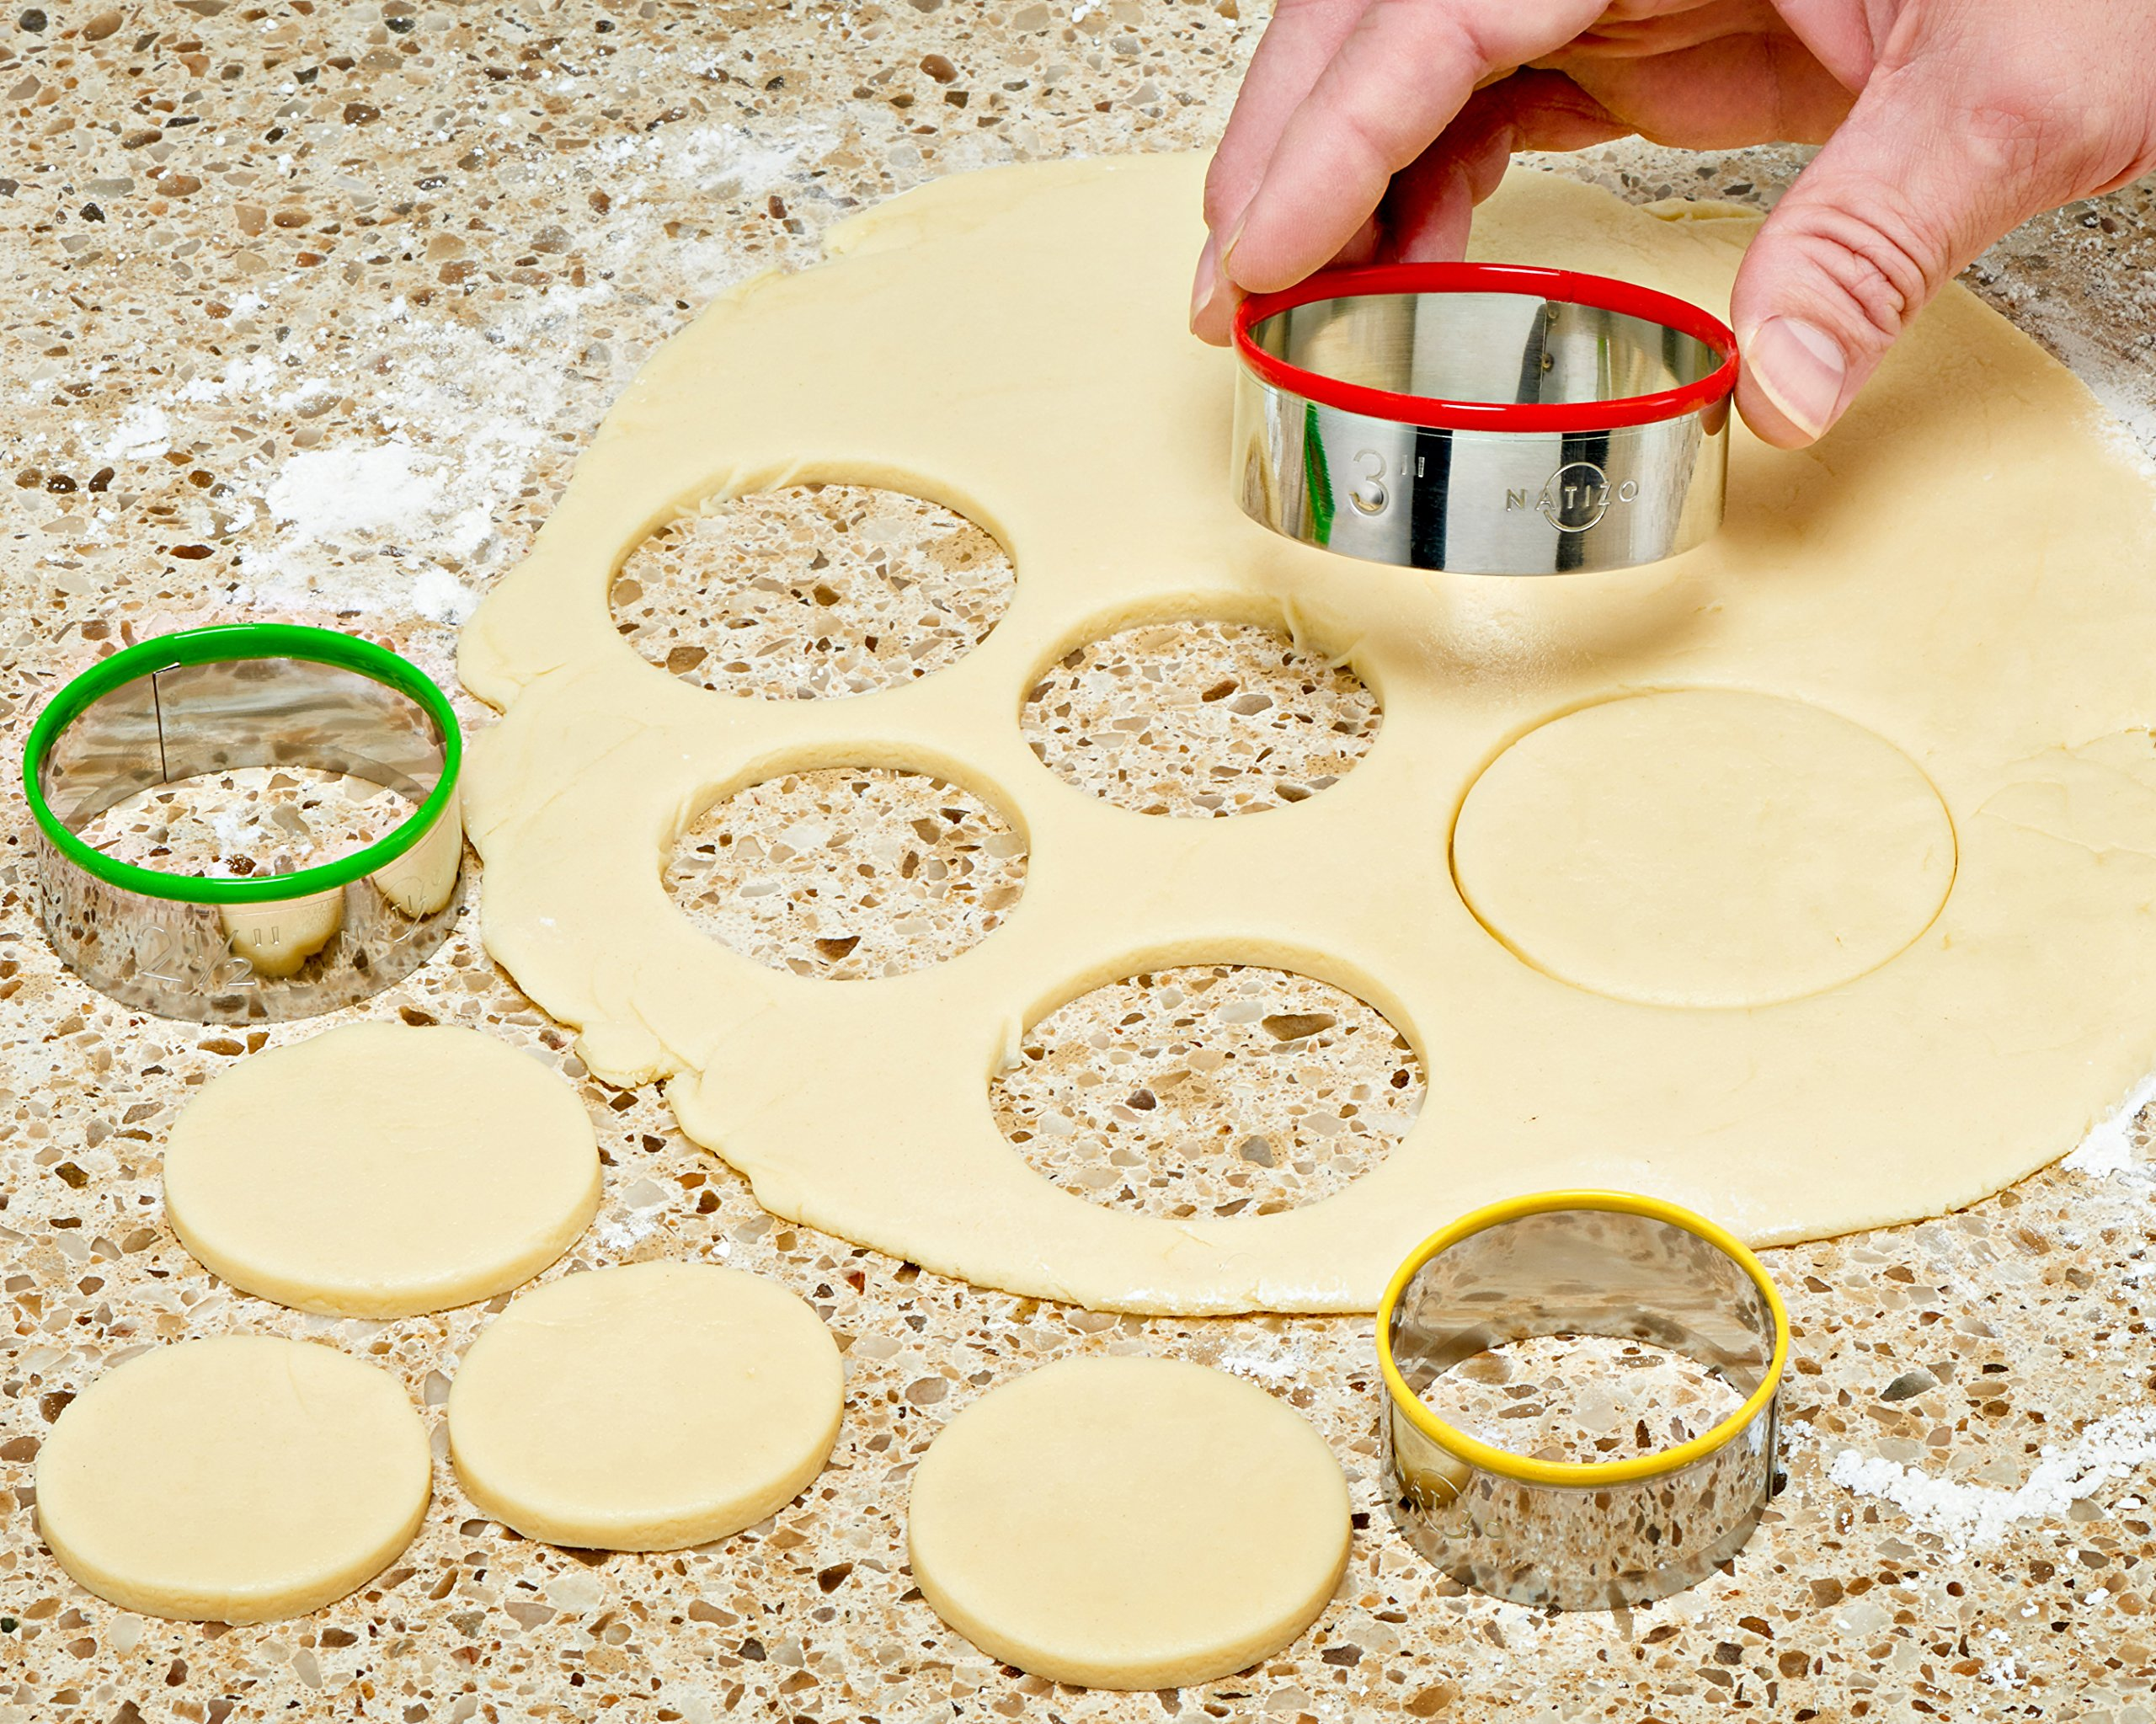 Natizo 12 Piece Round Stainless Steel Cookie Cutter Set - Size On Every Cutter - Silicone Tops by Natizo (Image #6)